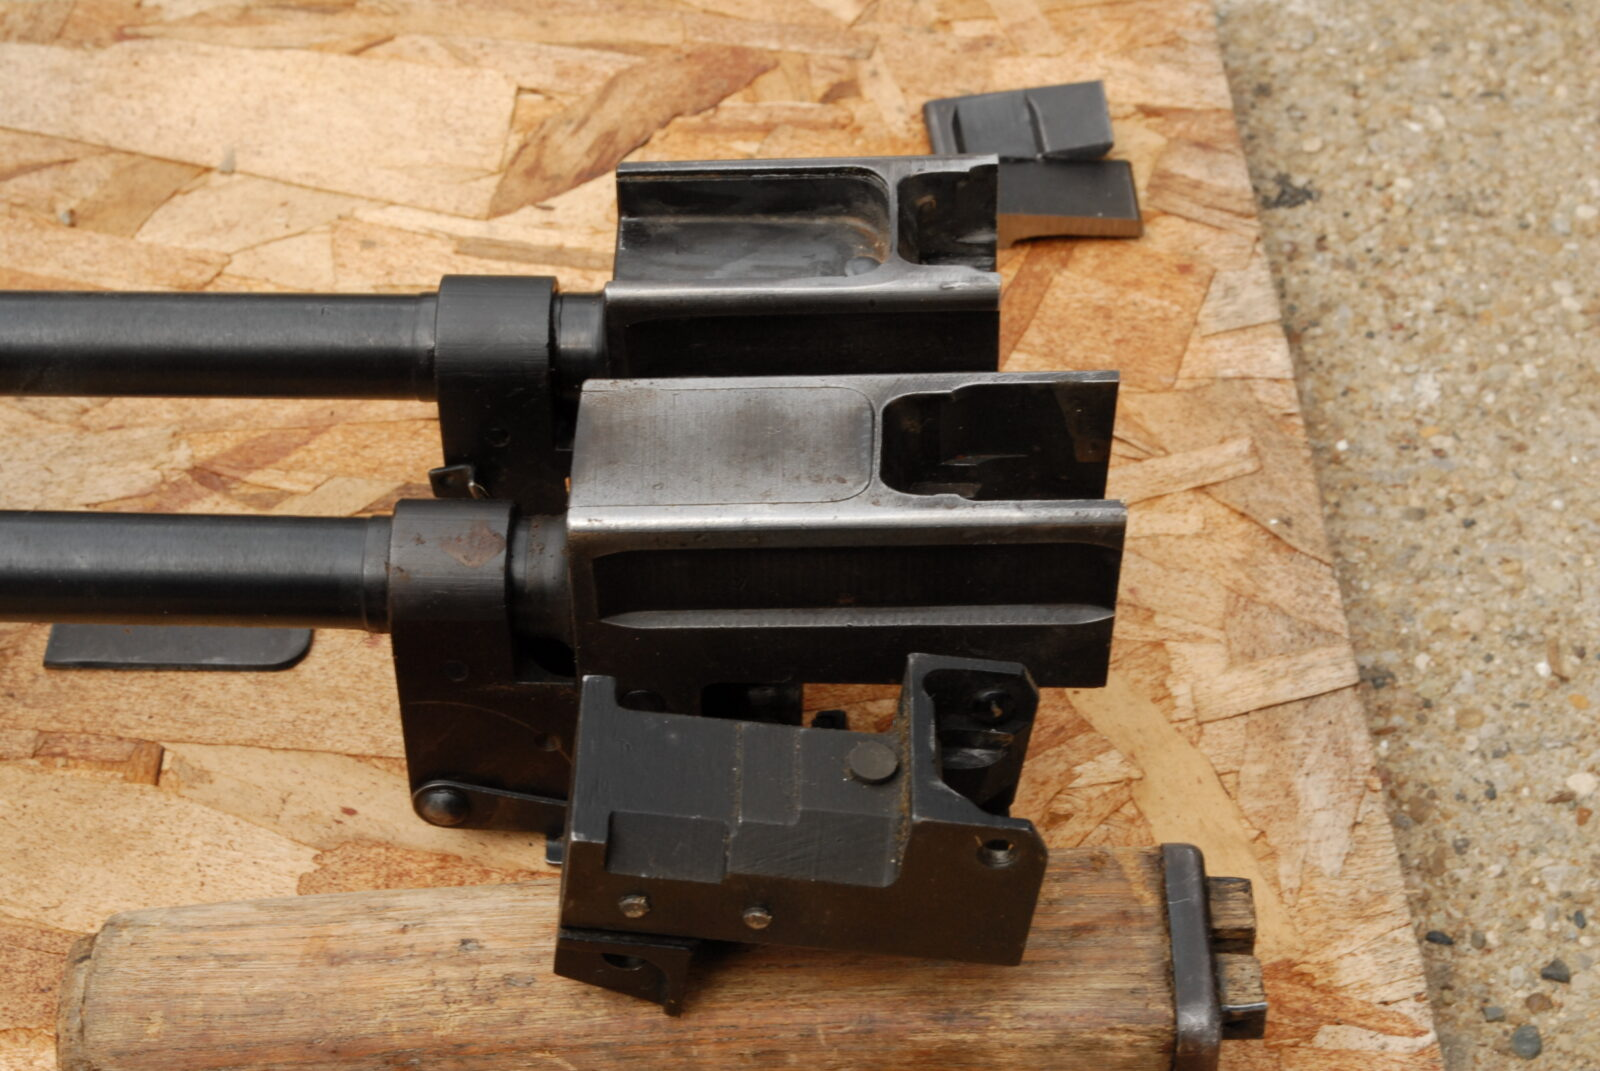 Converting a milled M70 receiver stub to a stamped receiver front